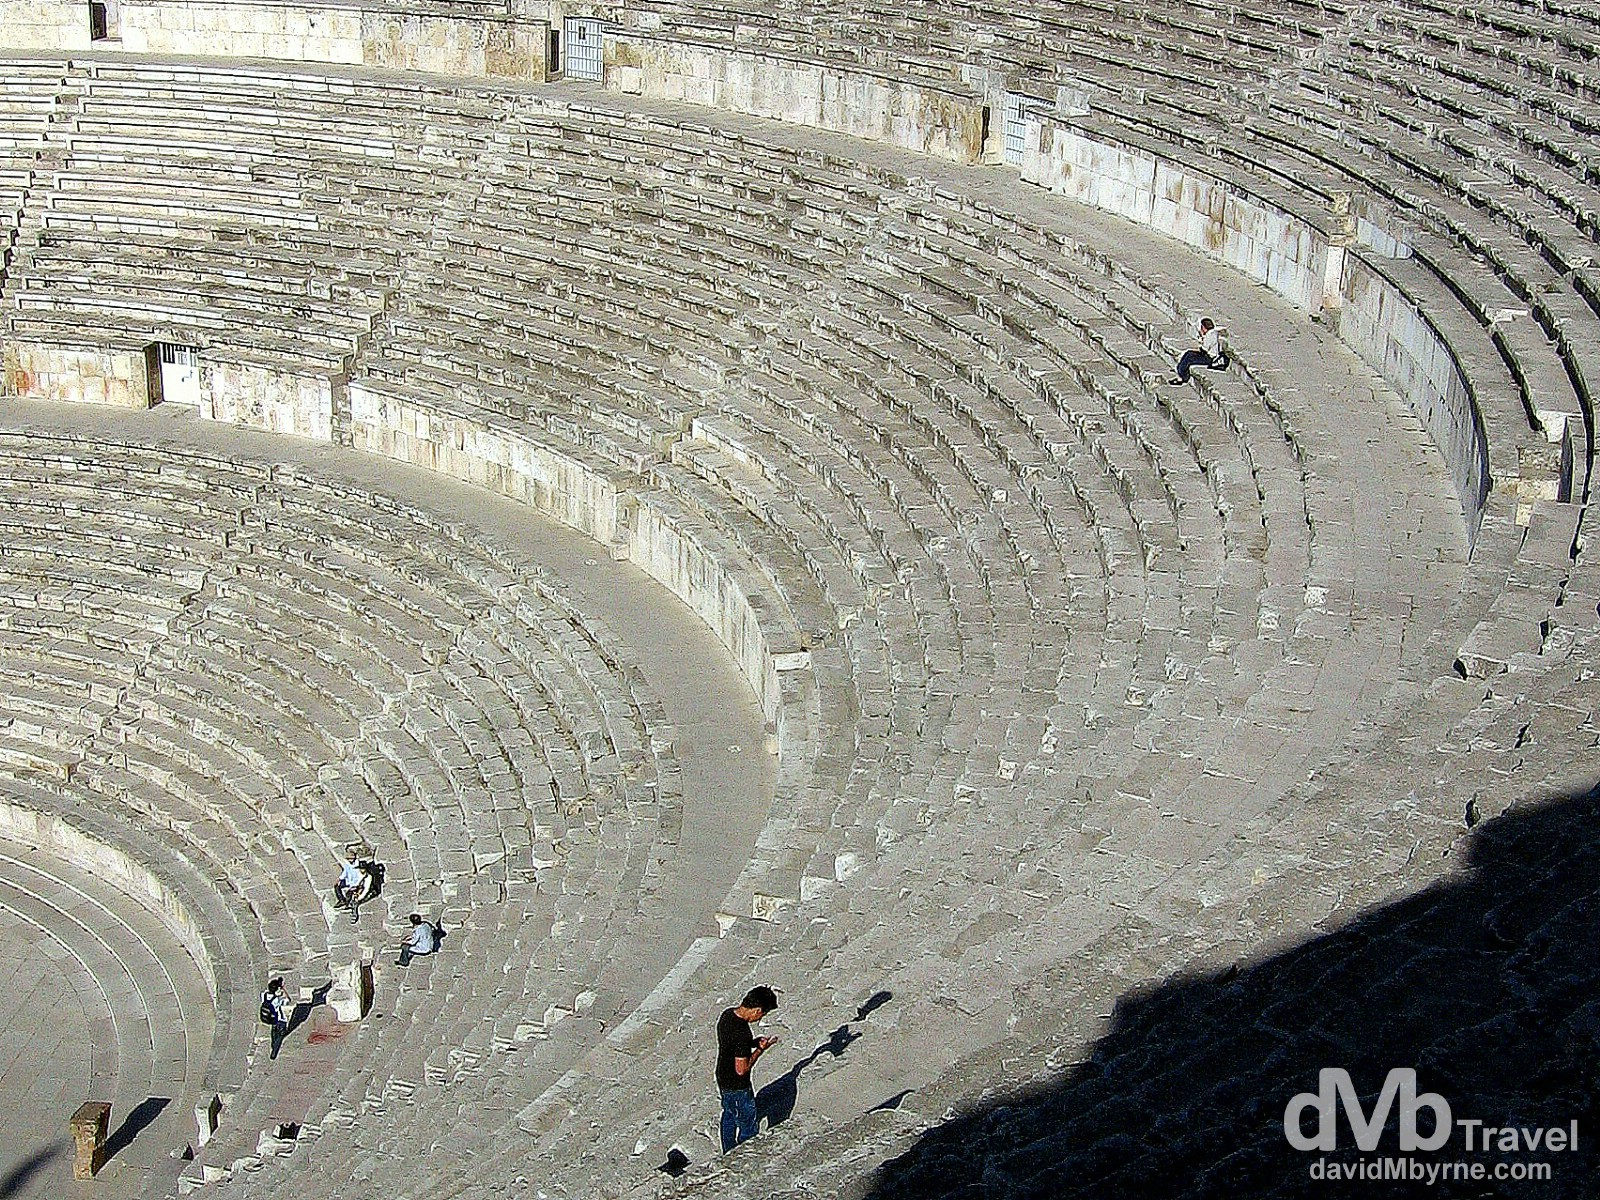 Steps of the Roman Amphitheater in Amman, Jordan. April 28, 2008.